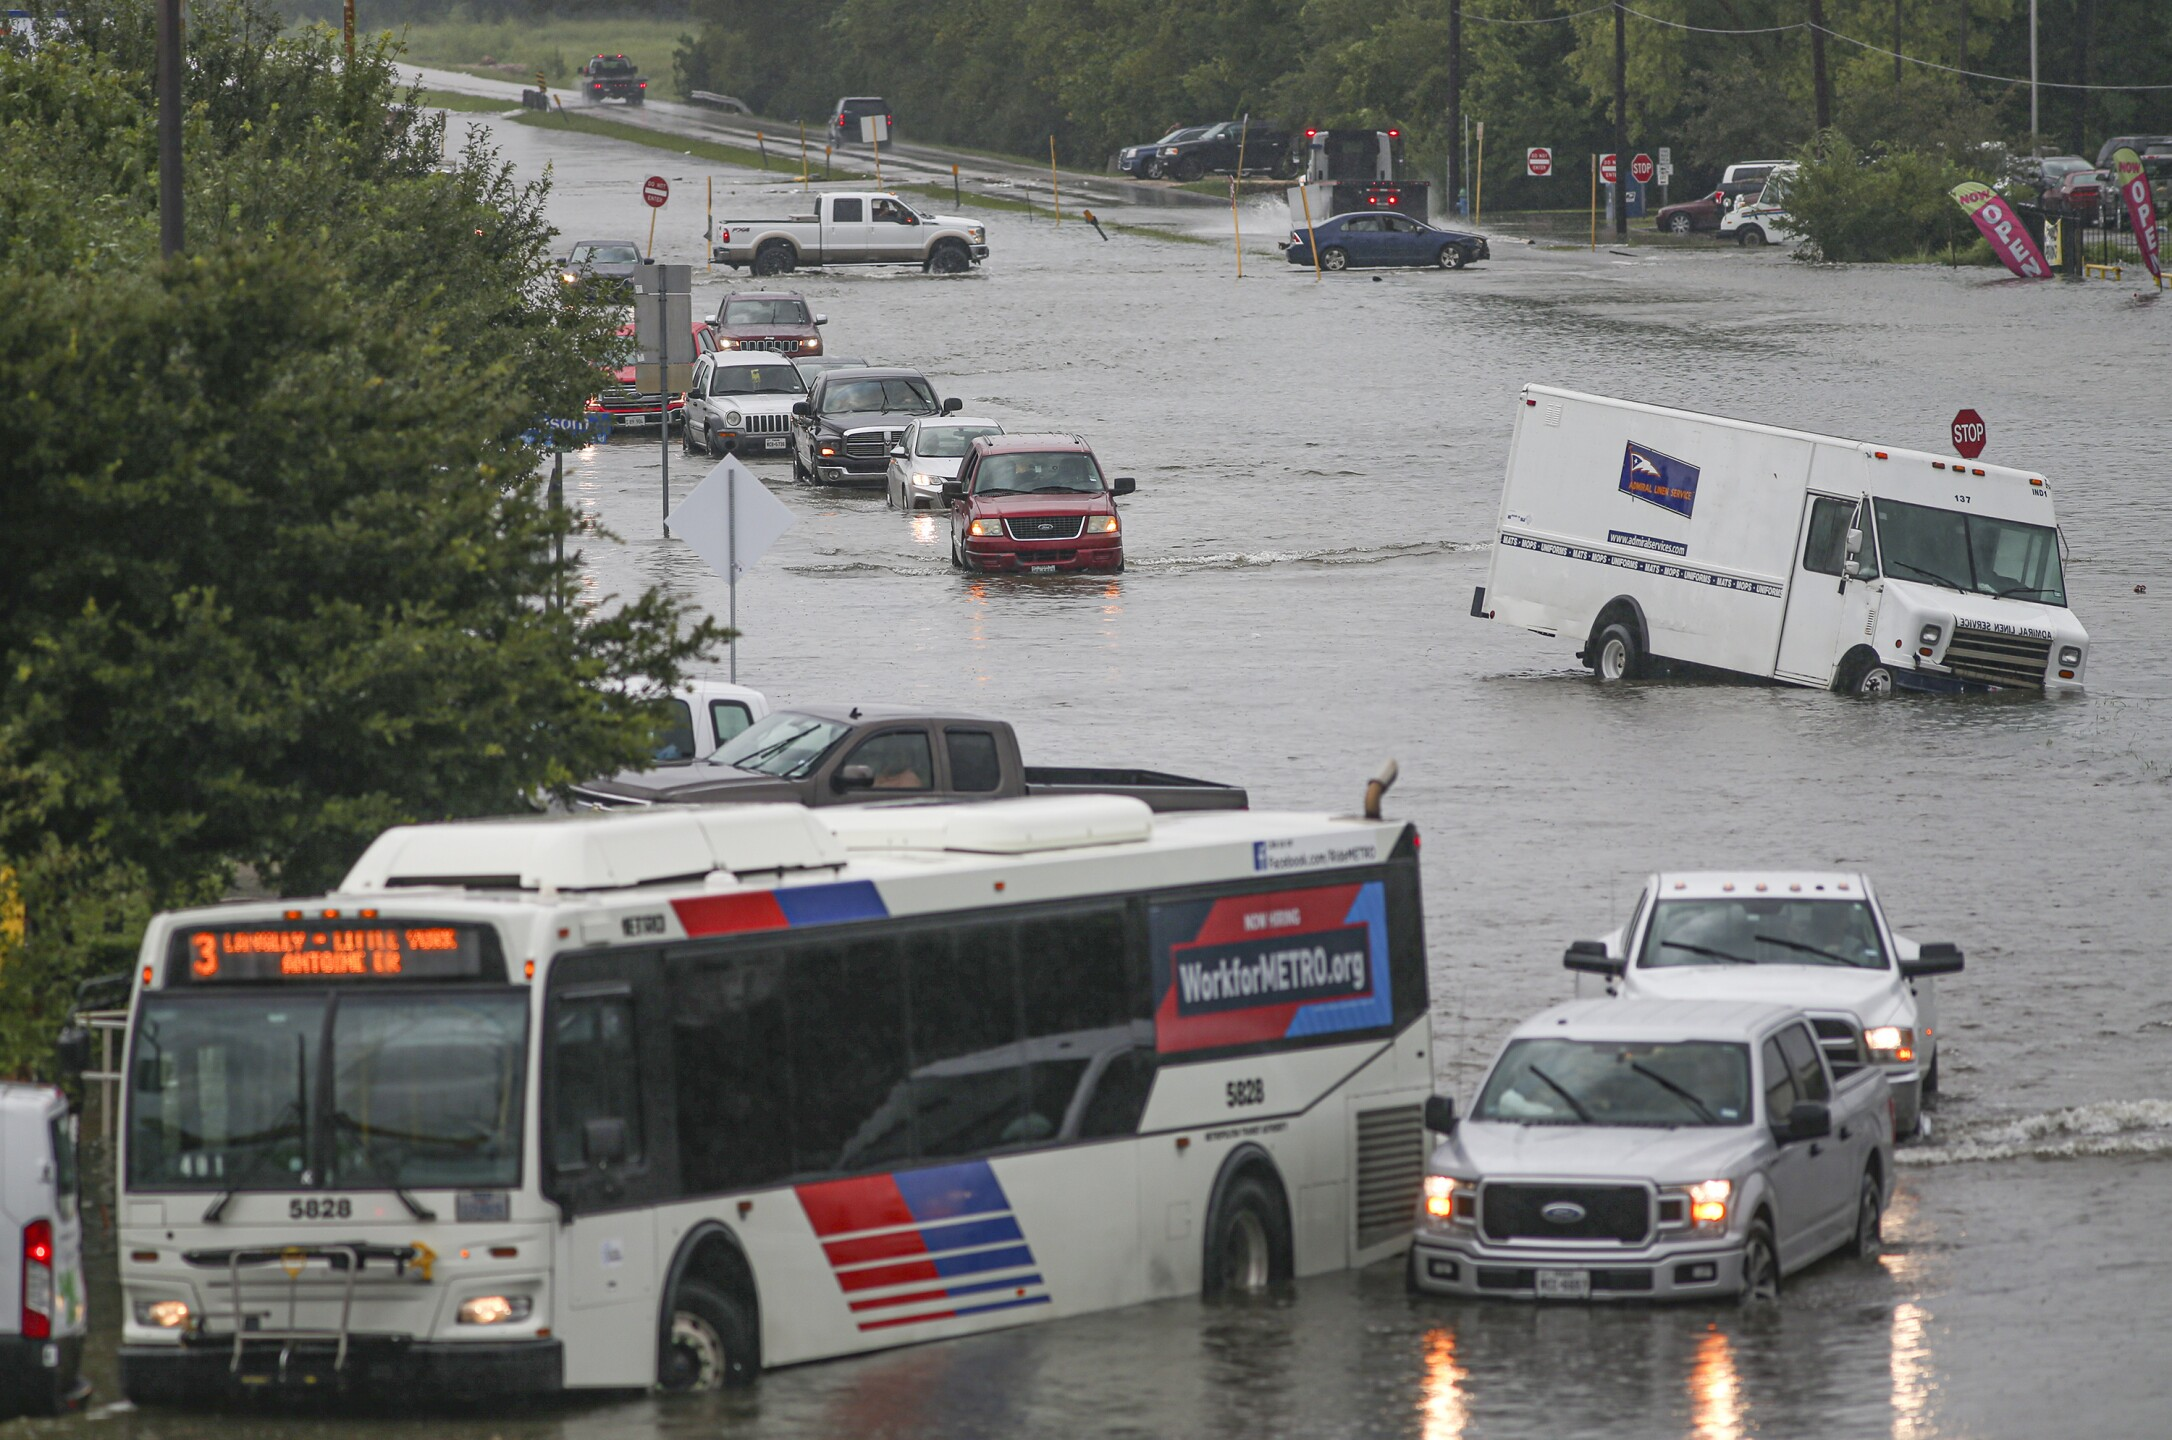 Massive flooding in Texas following Tropical Storm Imelda